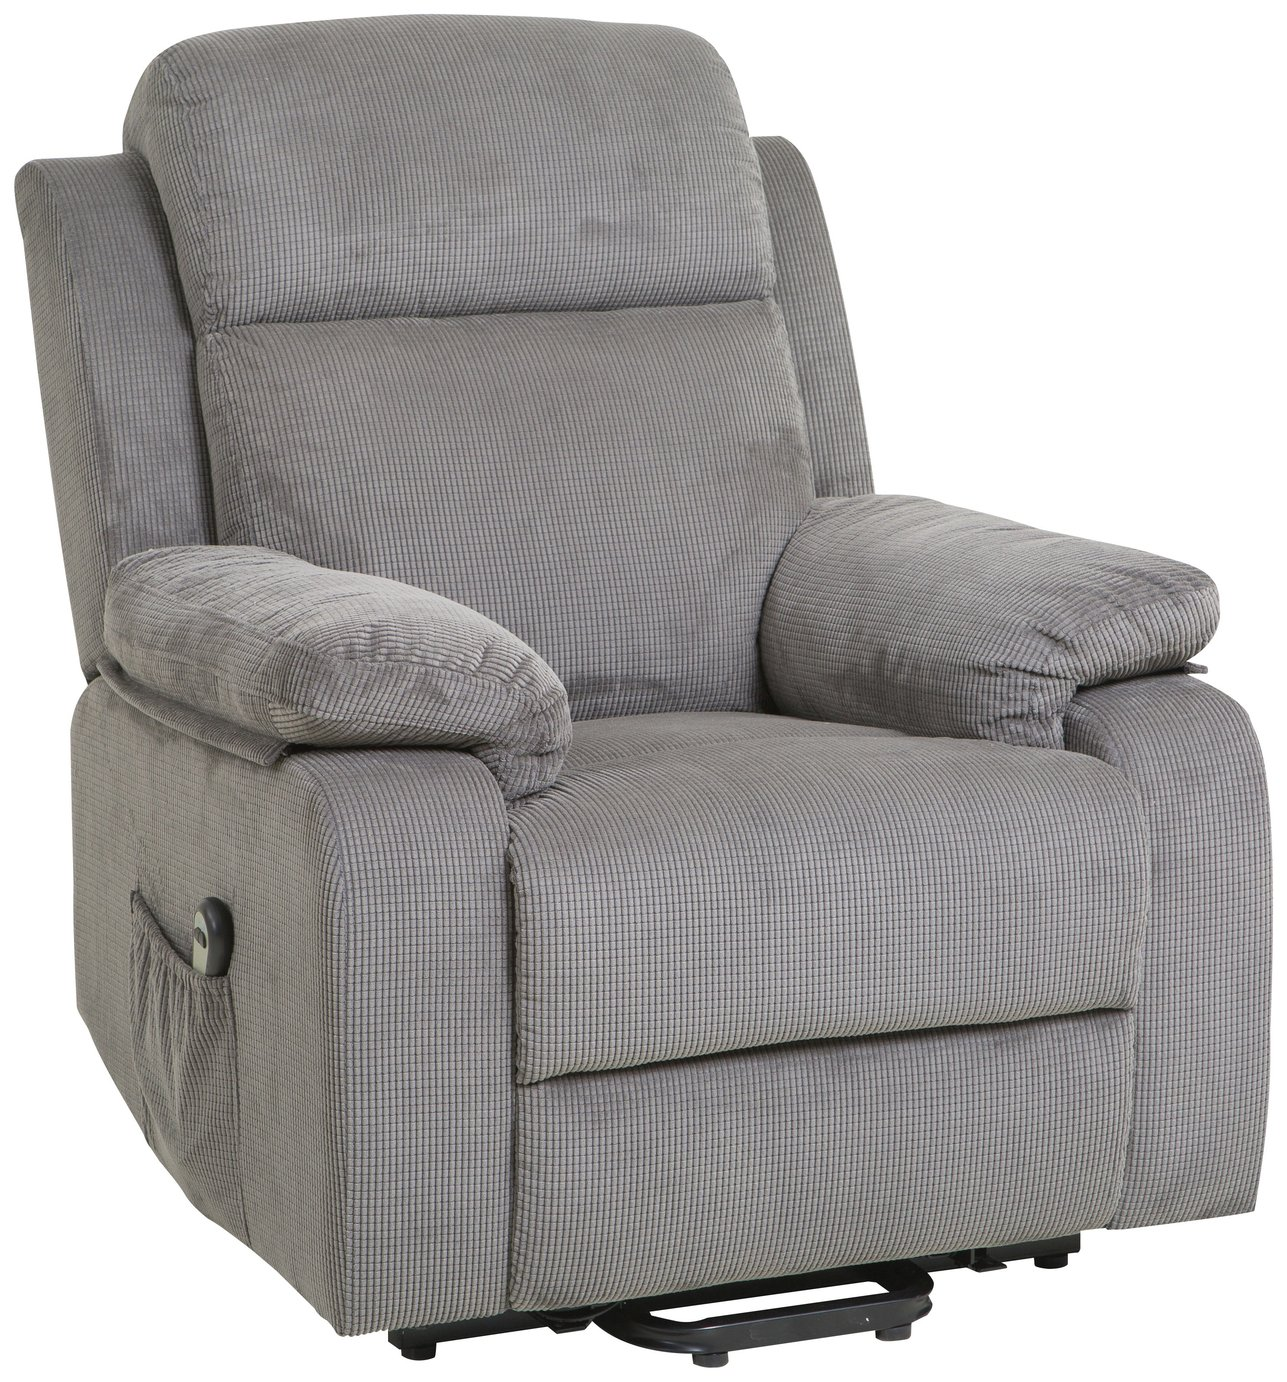 Argos Home Bradley Fabric Charcoal Riser Recliner